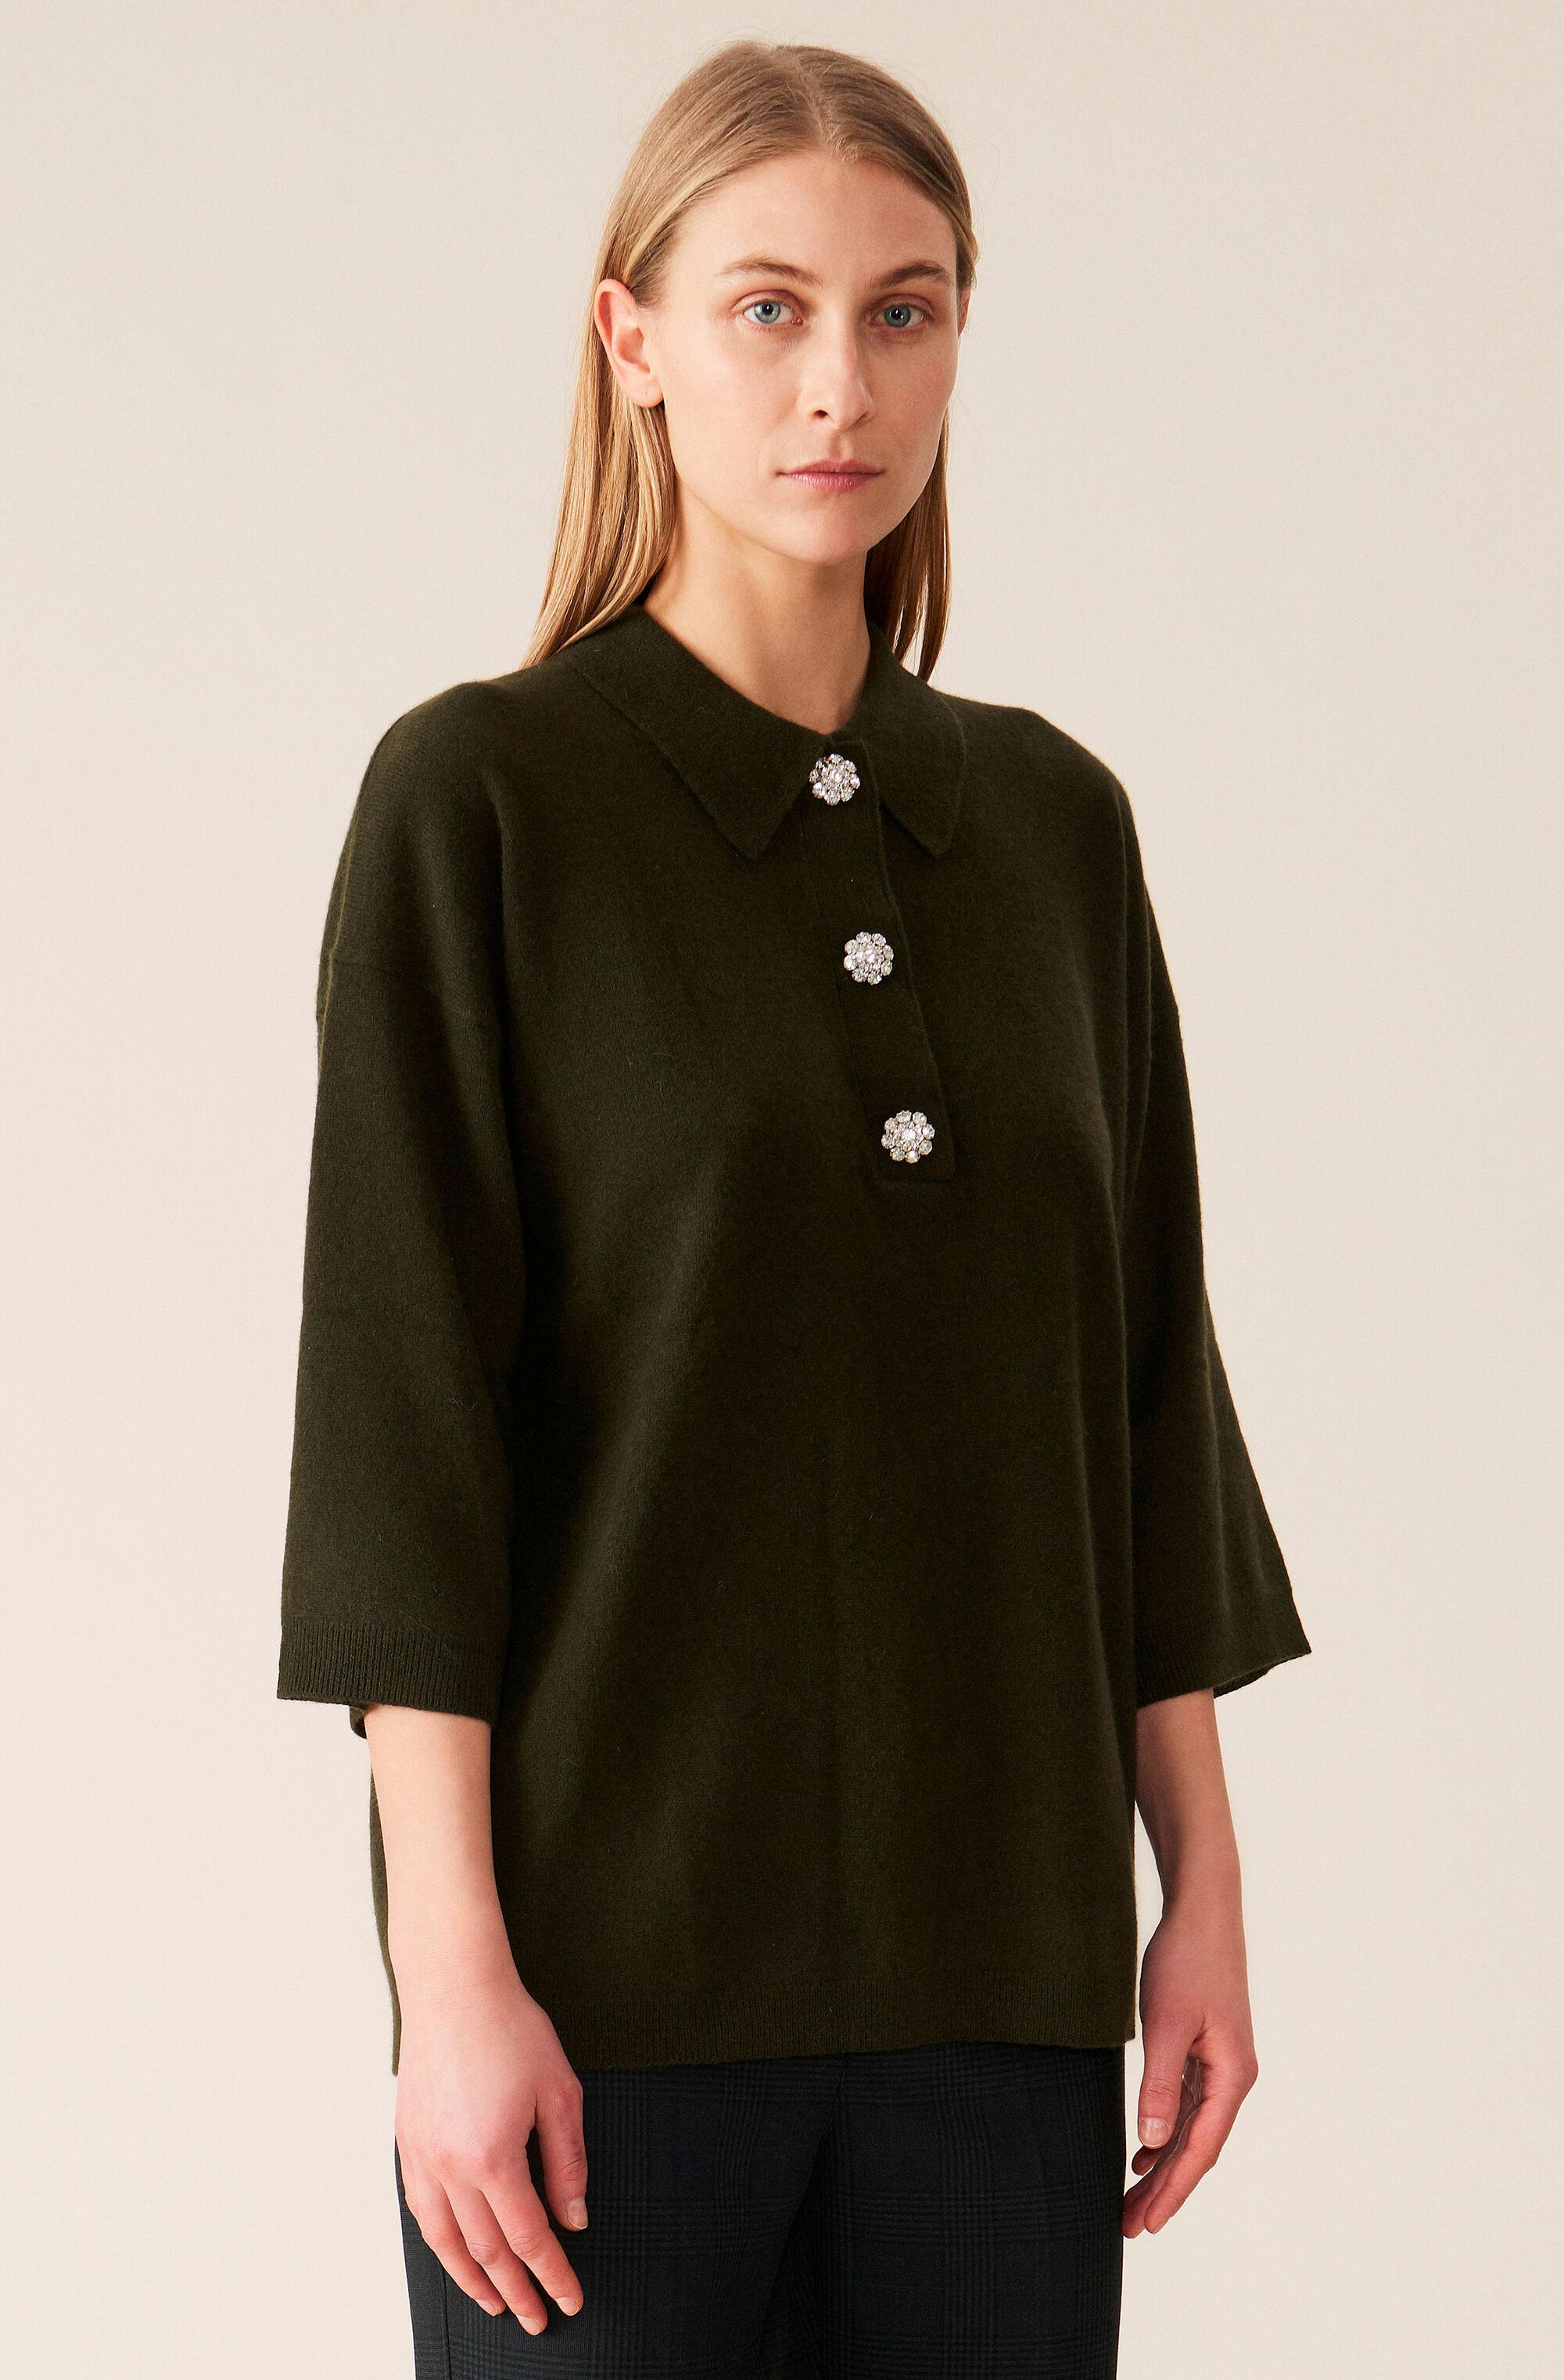 Cashmere Knit Oversized T-shirt - Solid